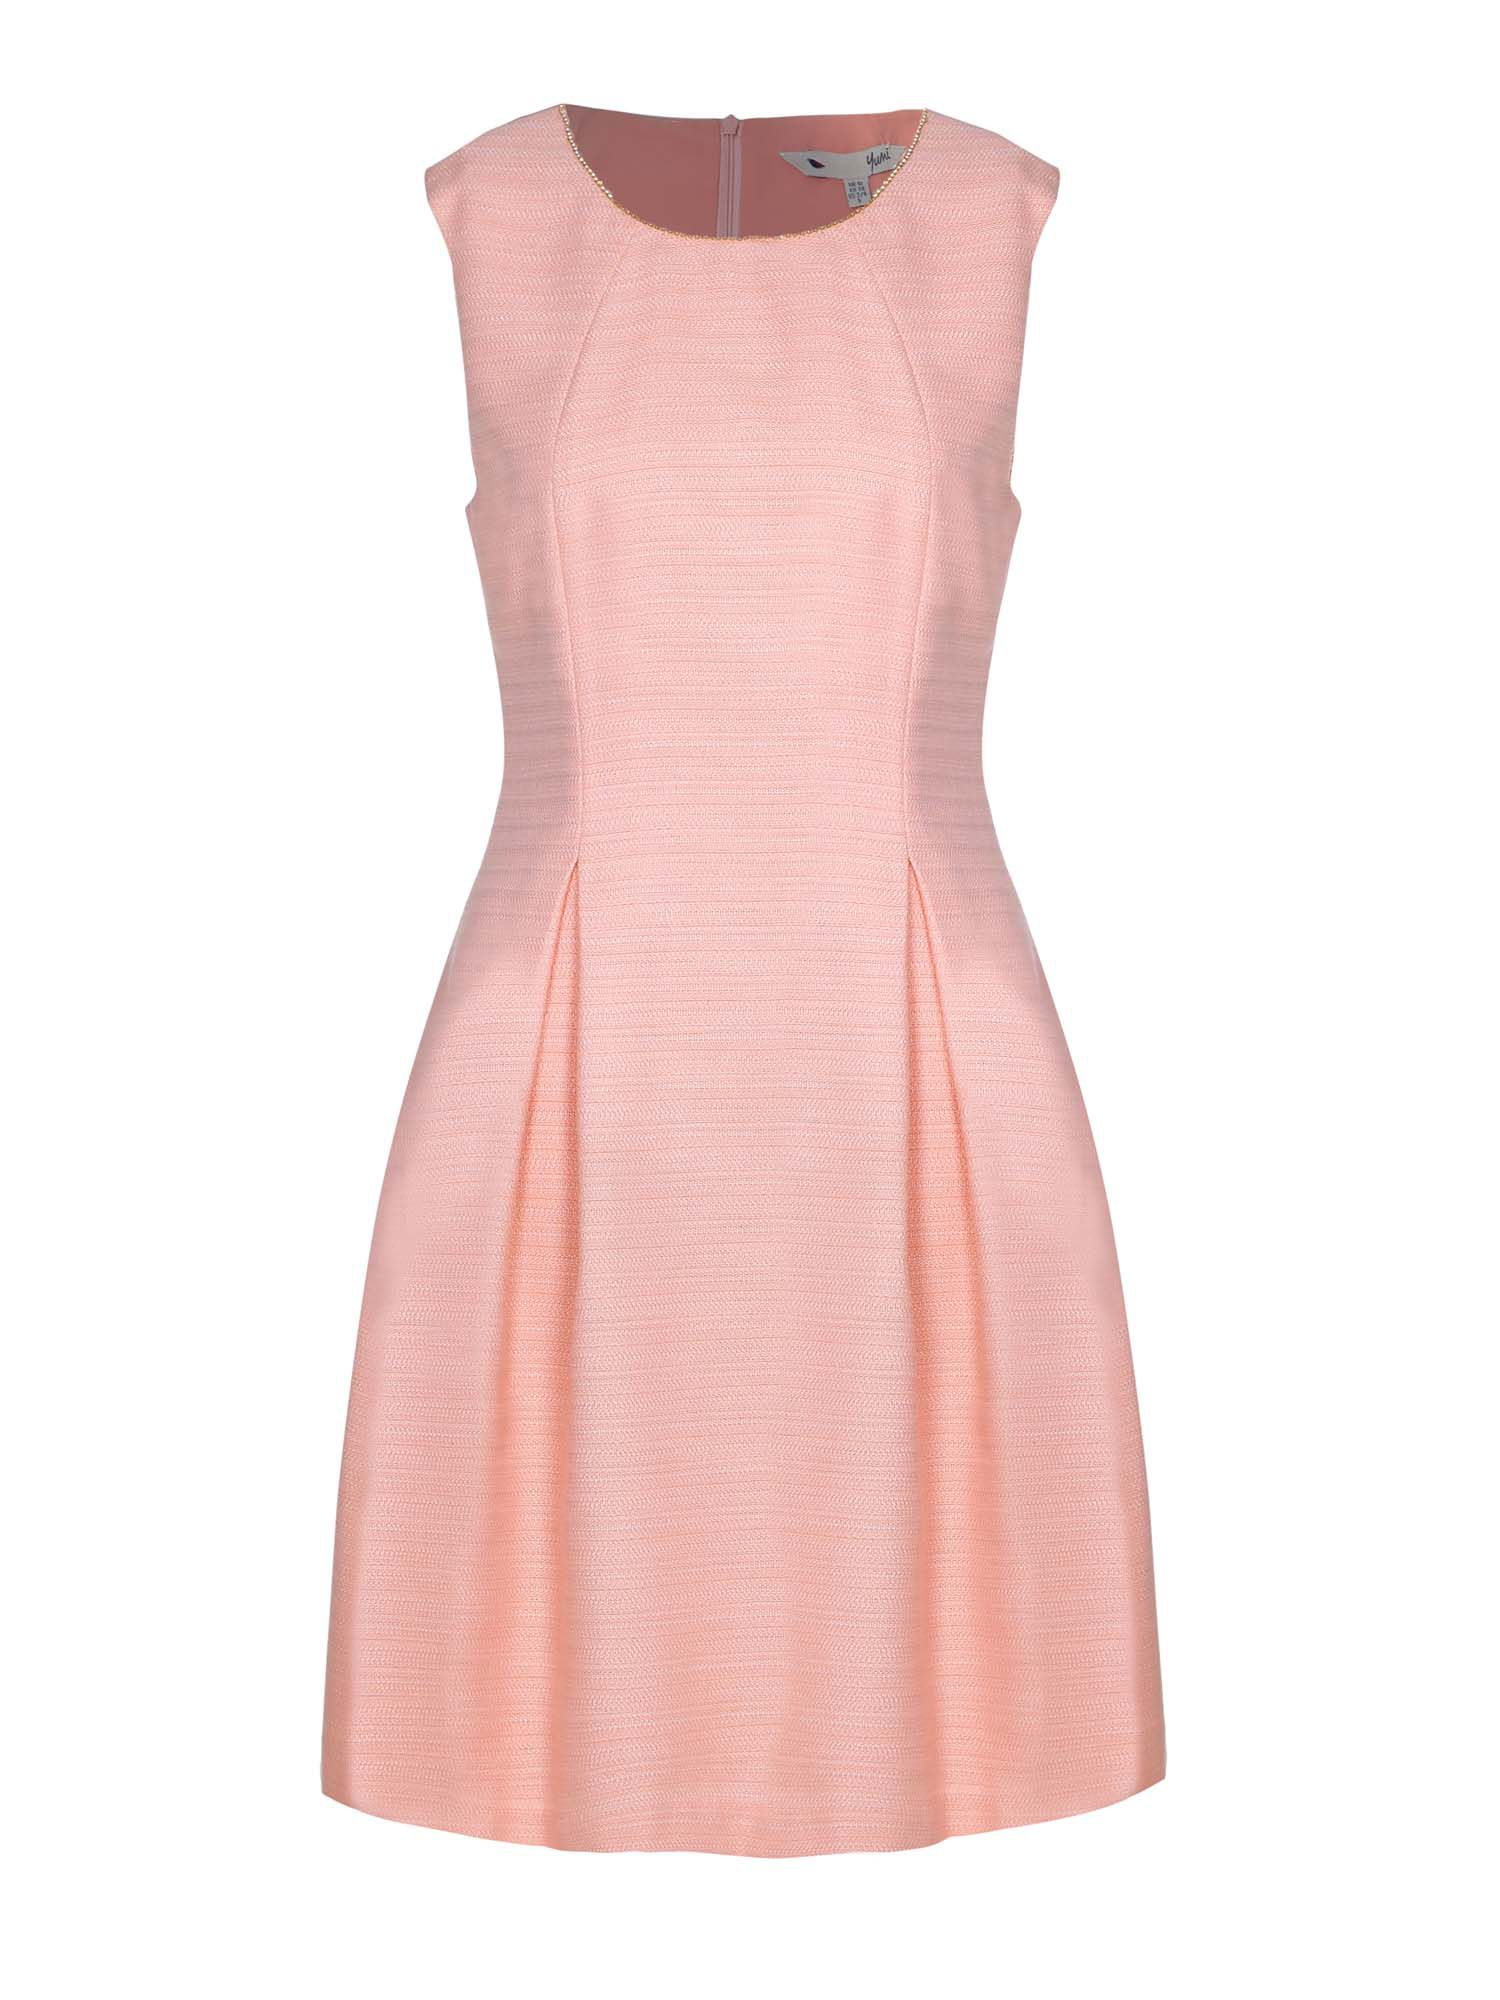 Yumi Embellished Jacquard Shift Dress, Pink